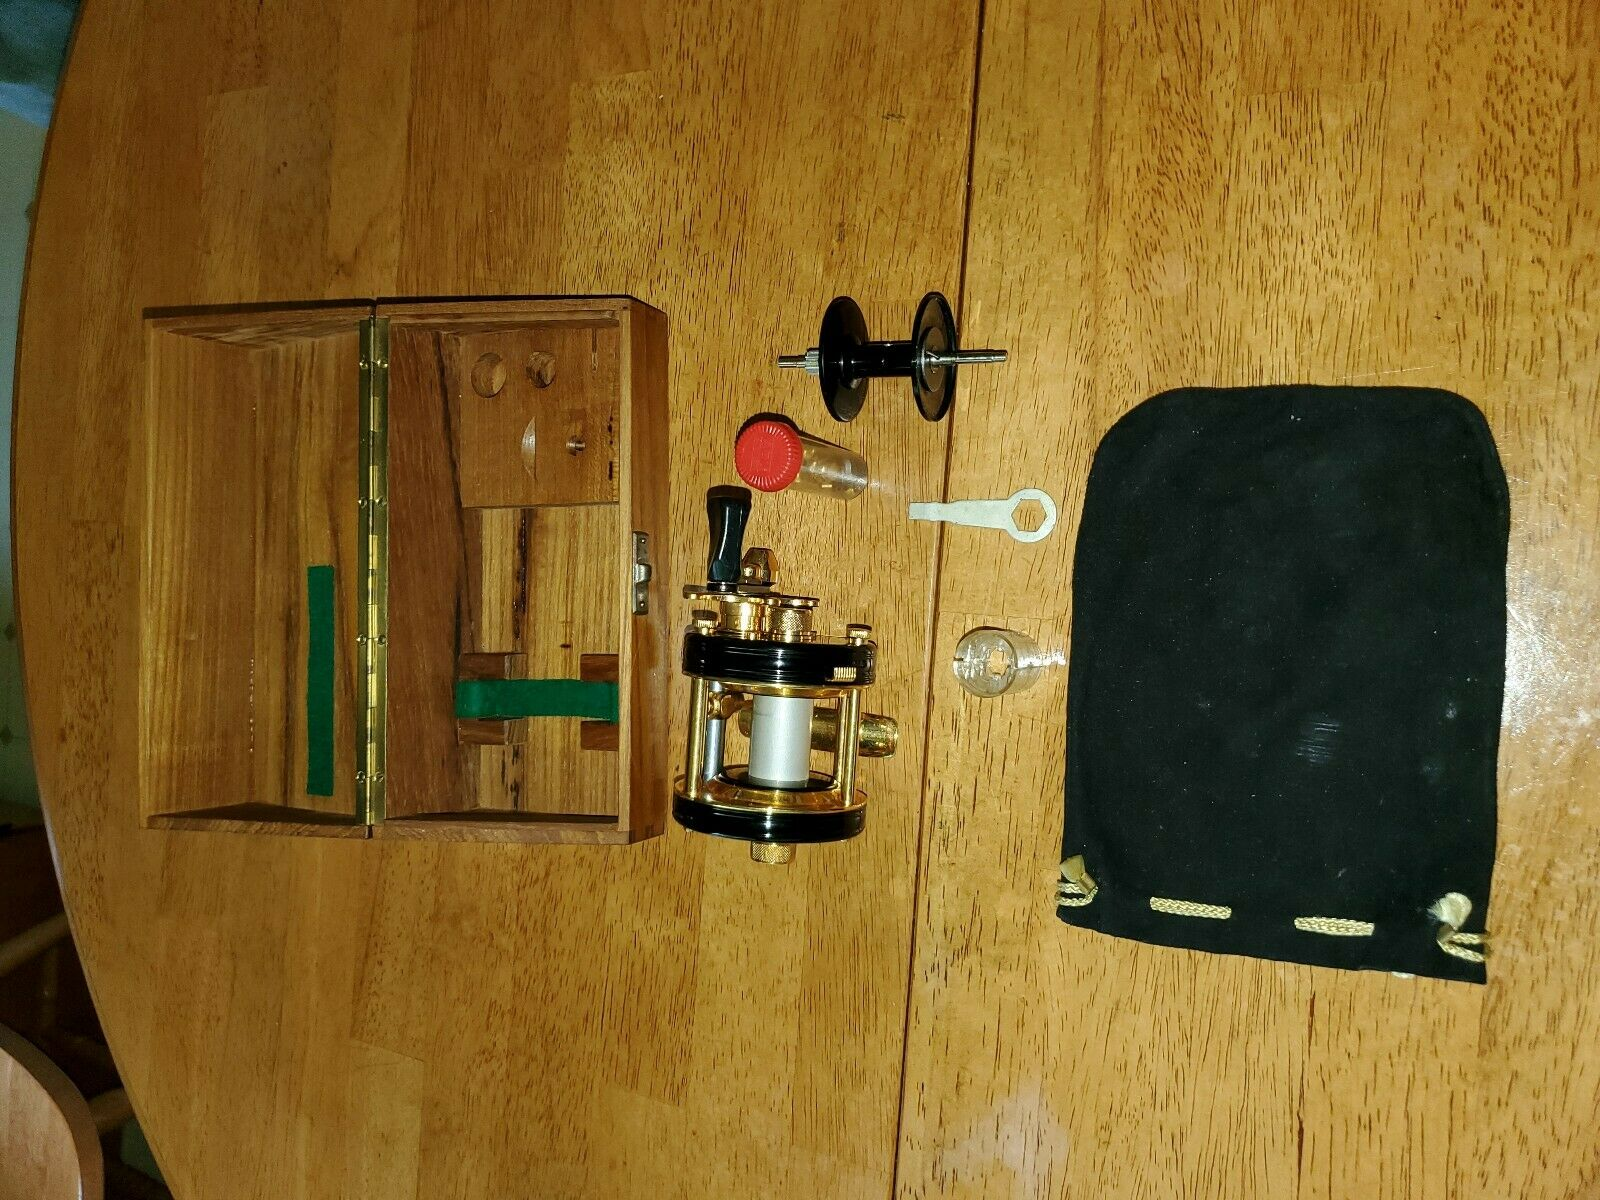 Abu Ambassadeur 5000C De  Luxe Deluxe Fishing Reel CDL gold W Original Box  first time reply